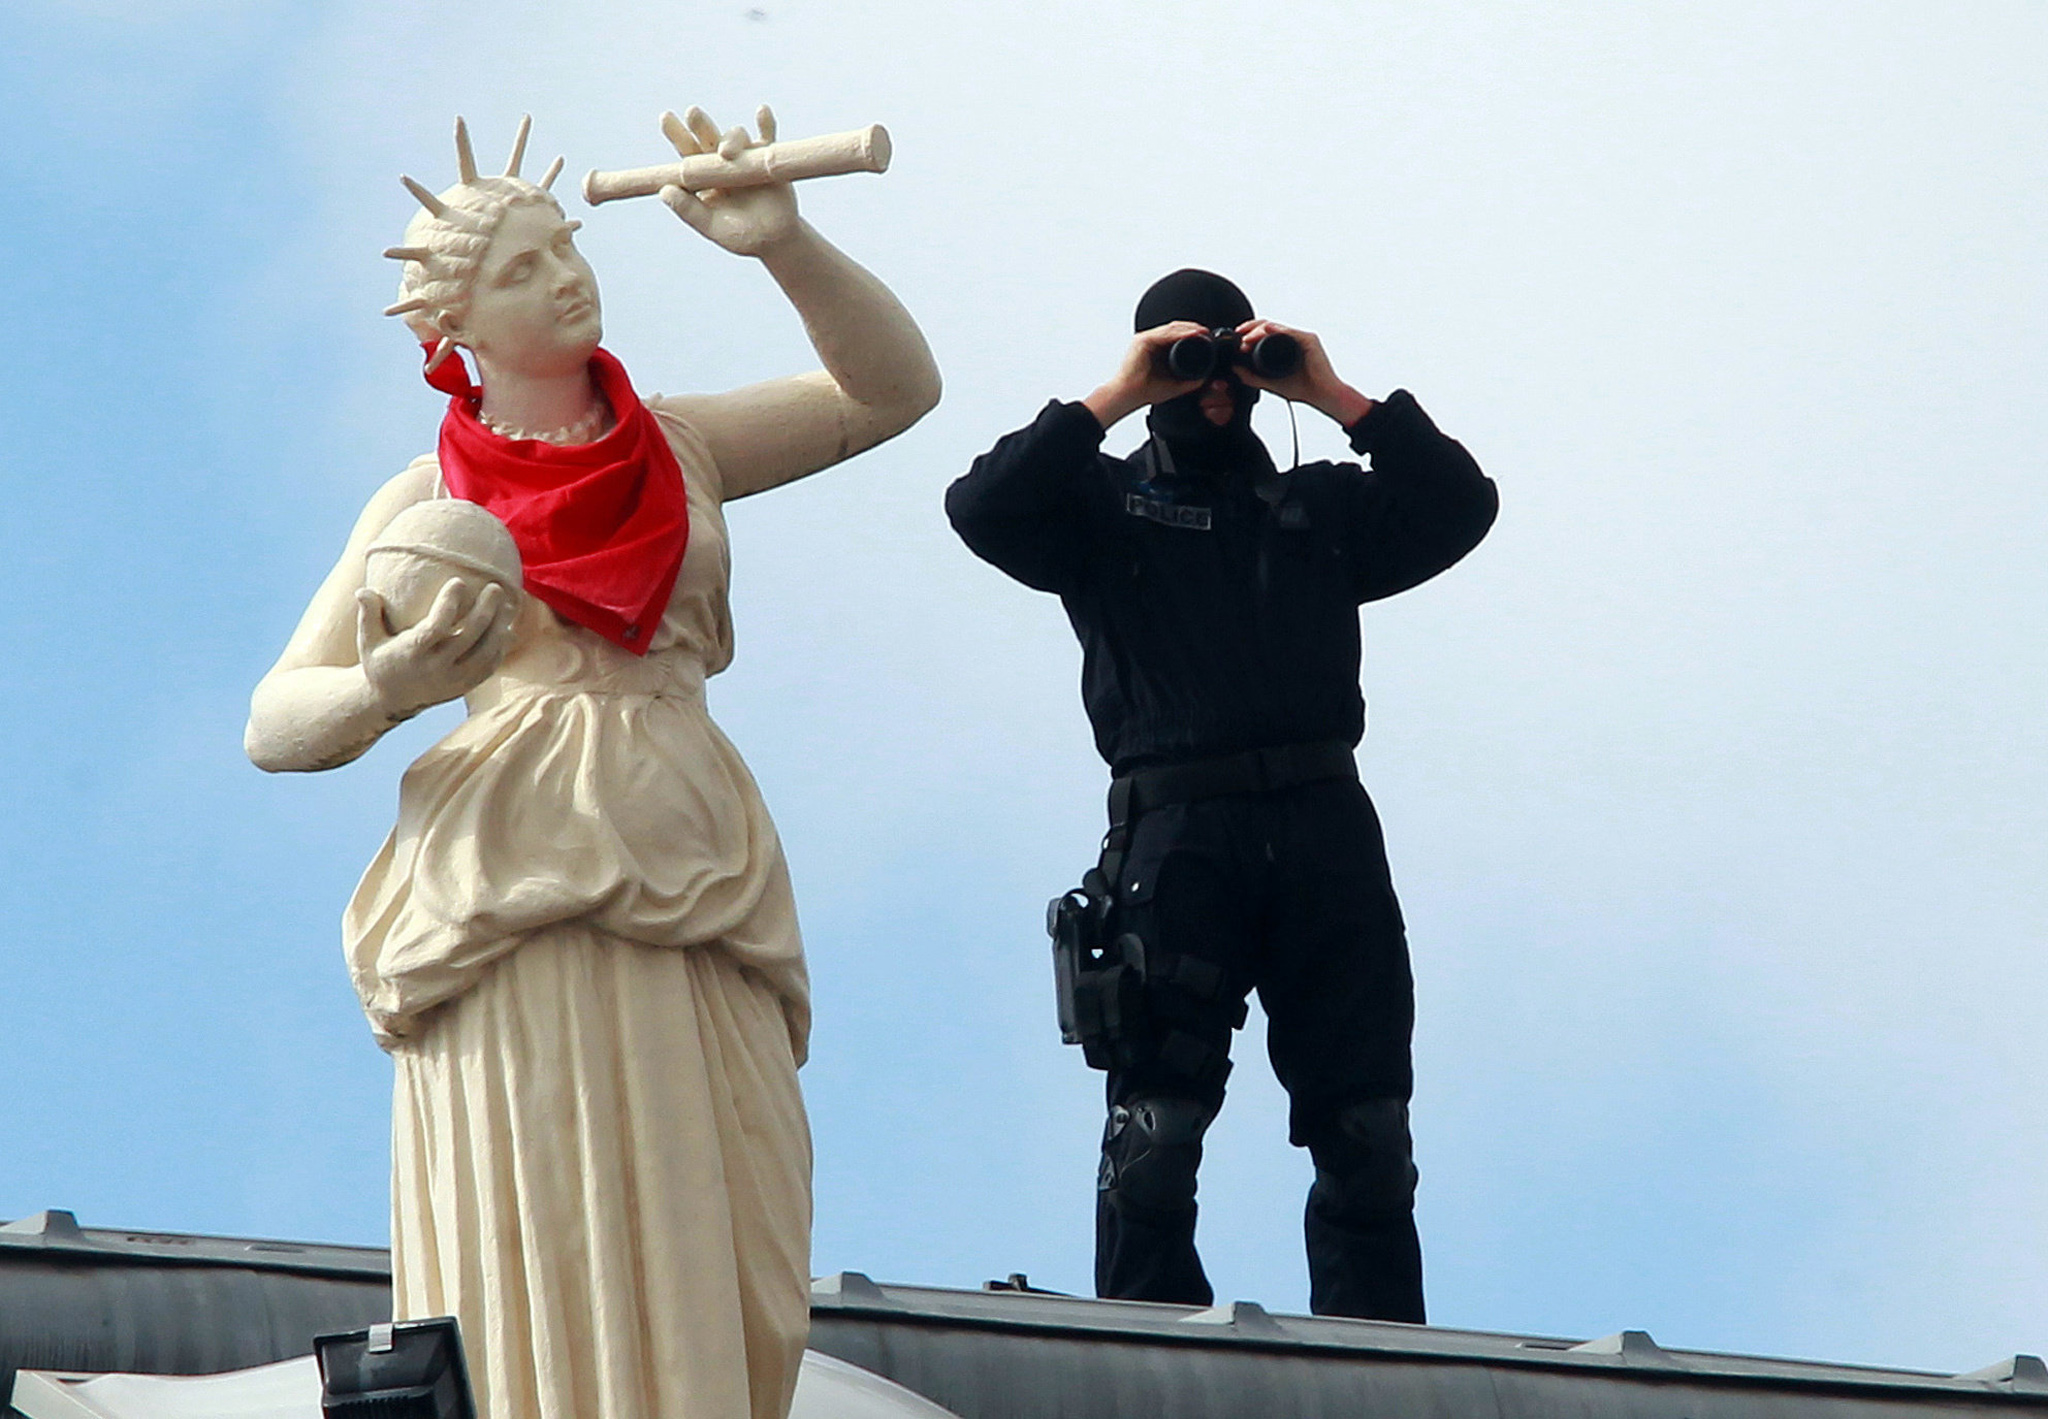 "In this photo taken on Wednesday, July 27, 2016, a French police officers watches the festivities through binoculars on the roof of the town hall, during the opening night of the Bayonne festival, or ""Fetes de Bayonne"", in Bayonne, southwestern France.  Bayonne, the cultural capital of the French Basque country, hosts the yearly traditional Bayonne festival from July 27-31, and is expected to attract about one million people this year from all over France, Spain, and other European countries. (AP Photo/Bob Edme)"